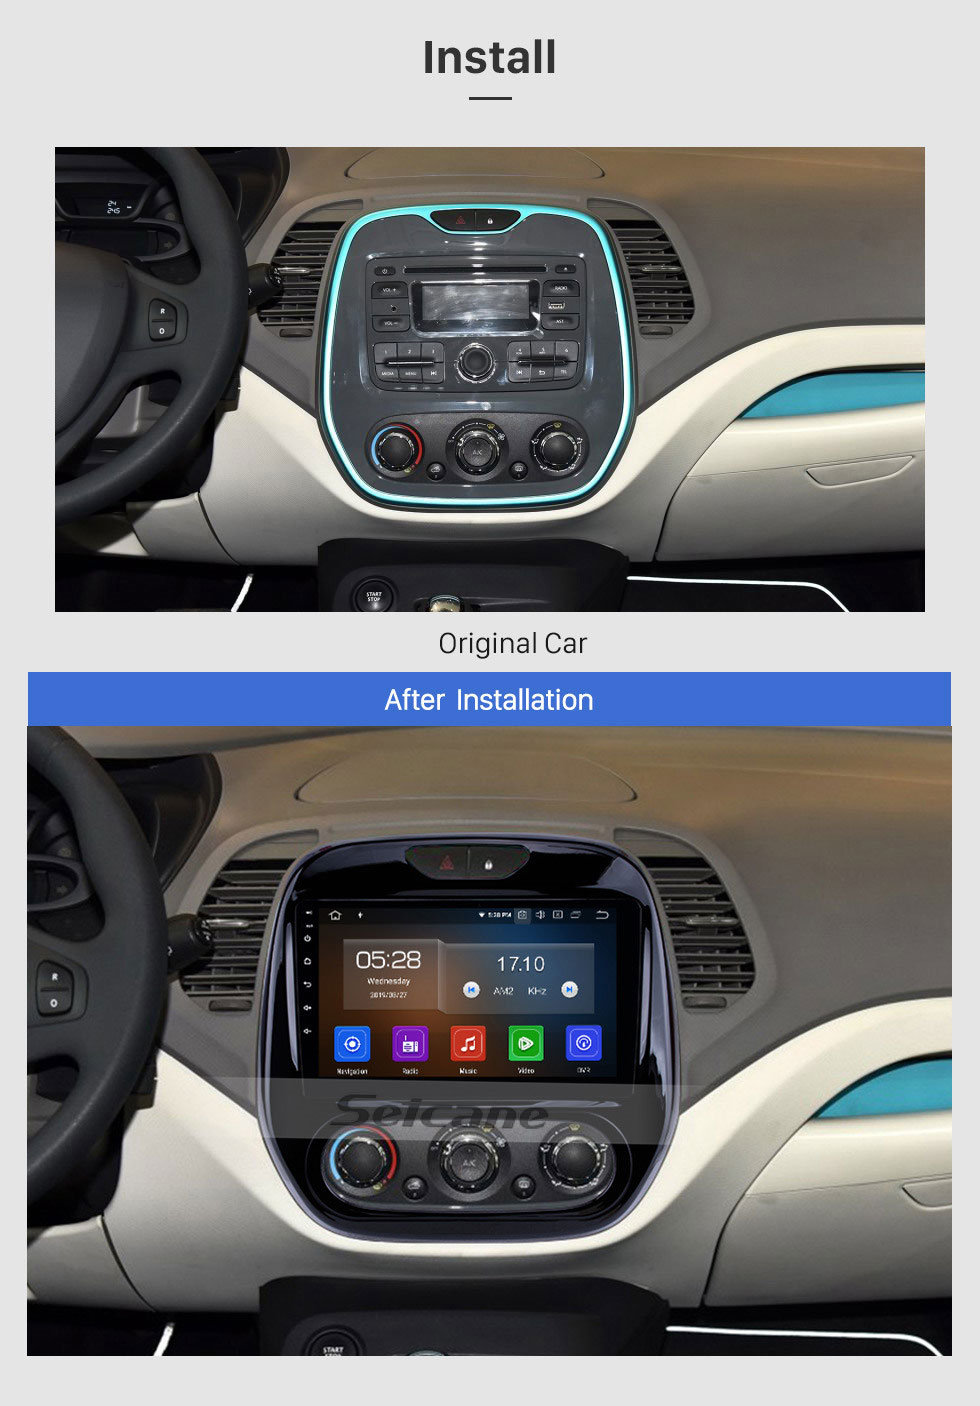 Seicane 9 inch Android 9.0 HD Touch Screen Head Unit GPS Navigation System for 2011-2016 Renault Captur CLIO Samsung QM3 Manual A/C Bluetooth Radio WIFI DVR Video USB Mirror link